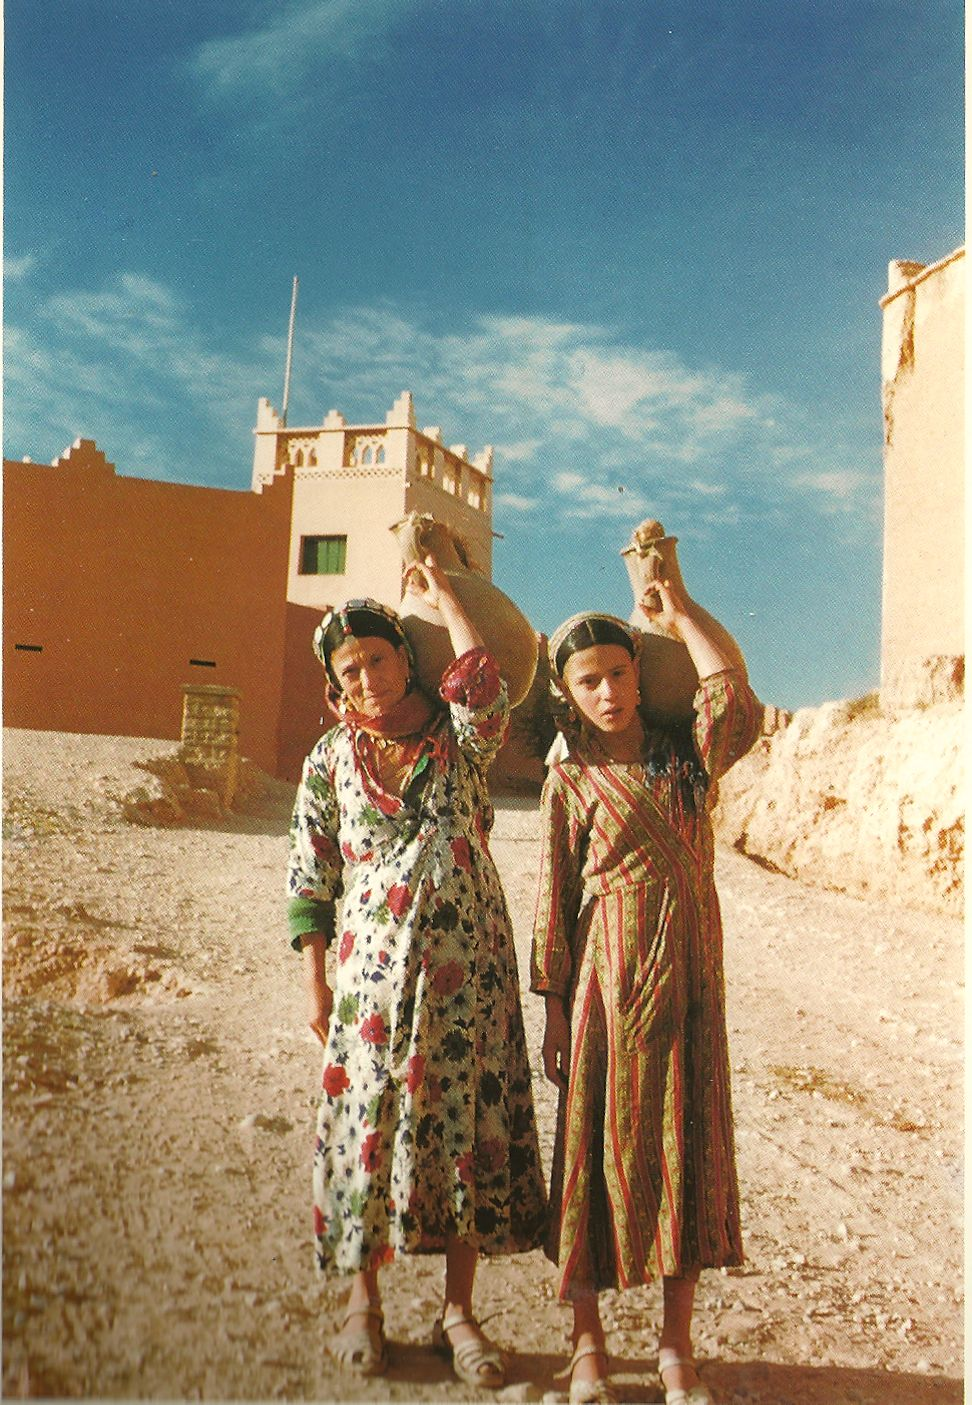 Httpwww Overlordsofchaos Comhtmlorigin Of The Word Jew Html: 1958. Tineghir, Todra Valley. Jewish Women Carrying Water